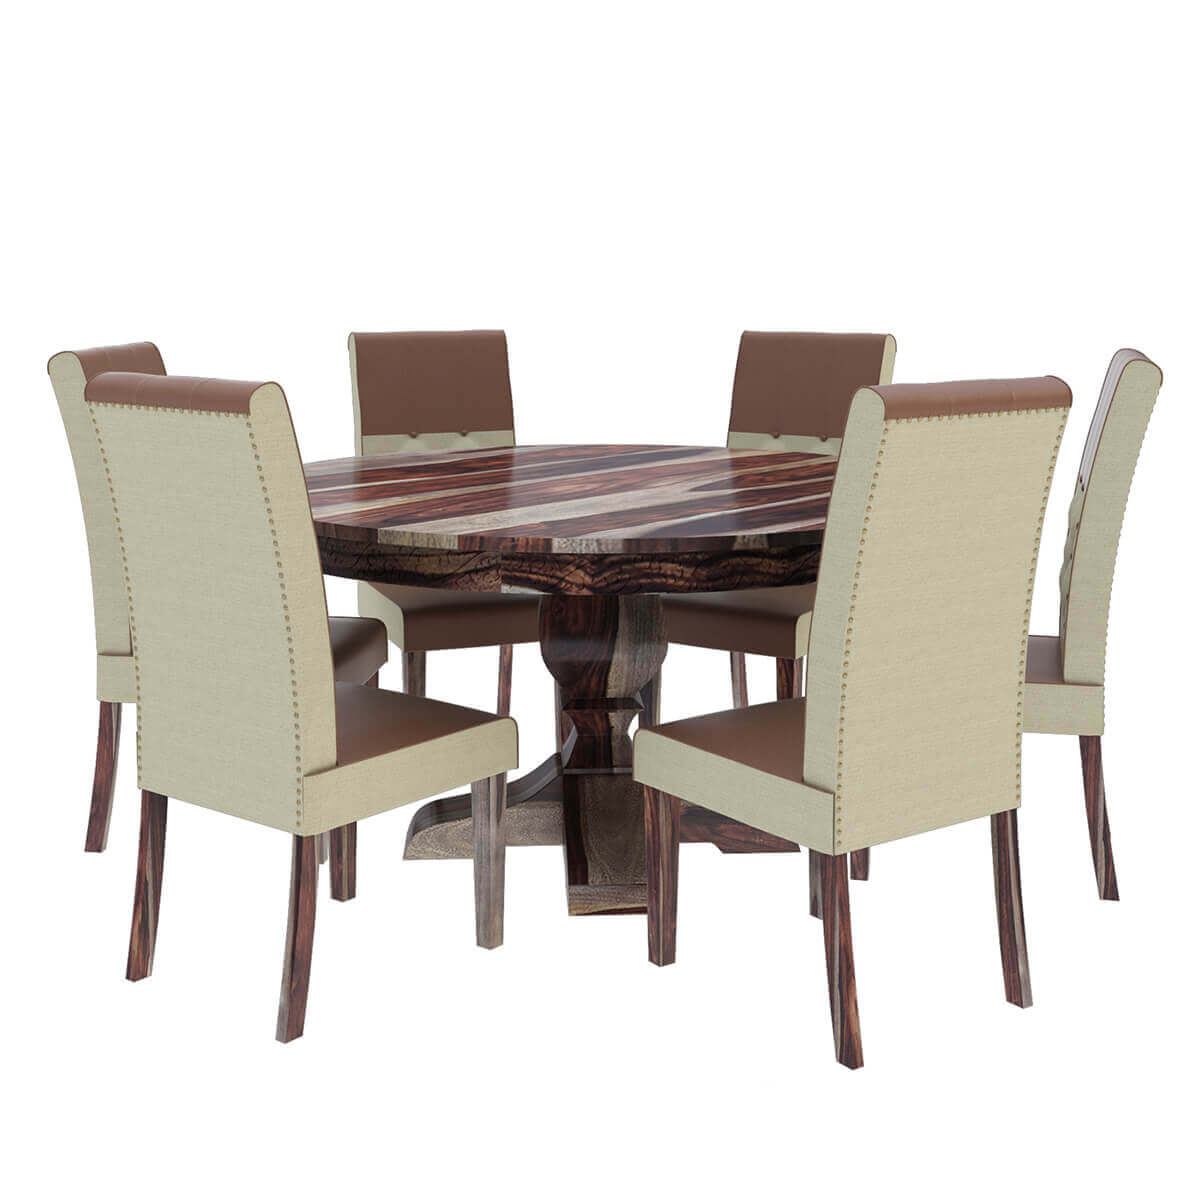 Solid Wood Dining Room Set: Hosford Handcrafted Solid Wood 8 Piece Round Dining Room Set